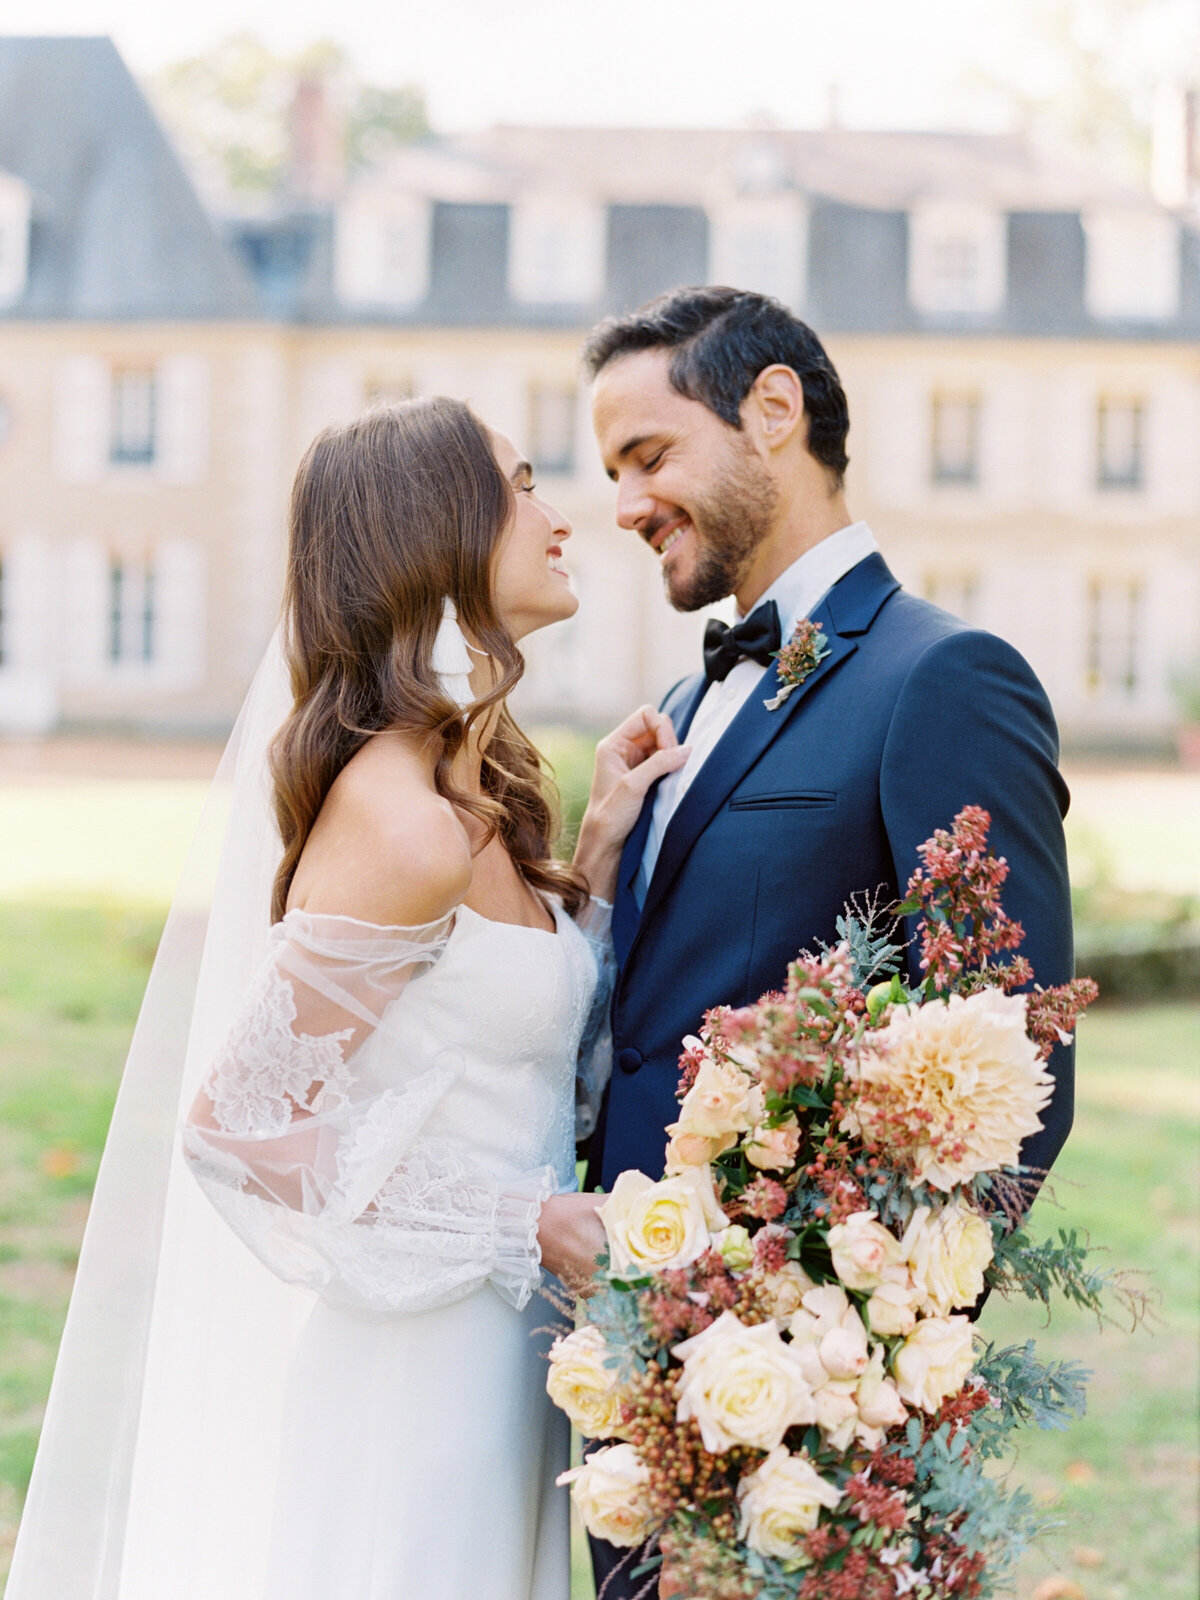 chateau-bouthonvilliers-wedding-paris-wedding-photographer-mackenzie-reiter-photography-32